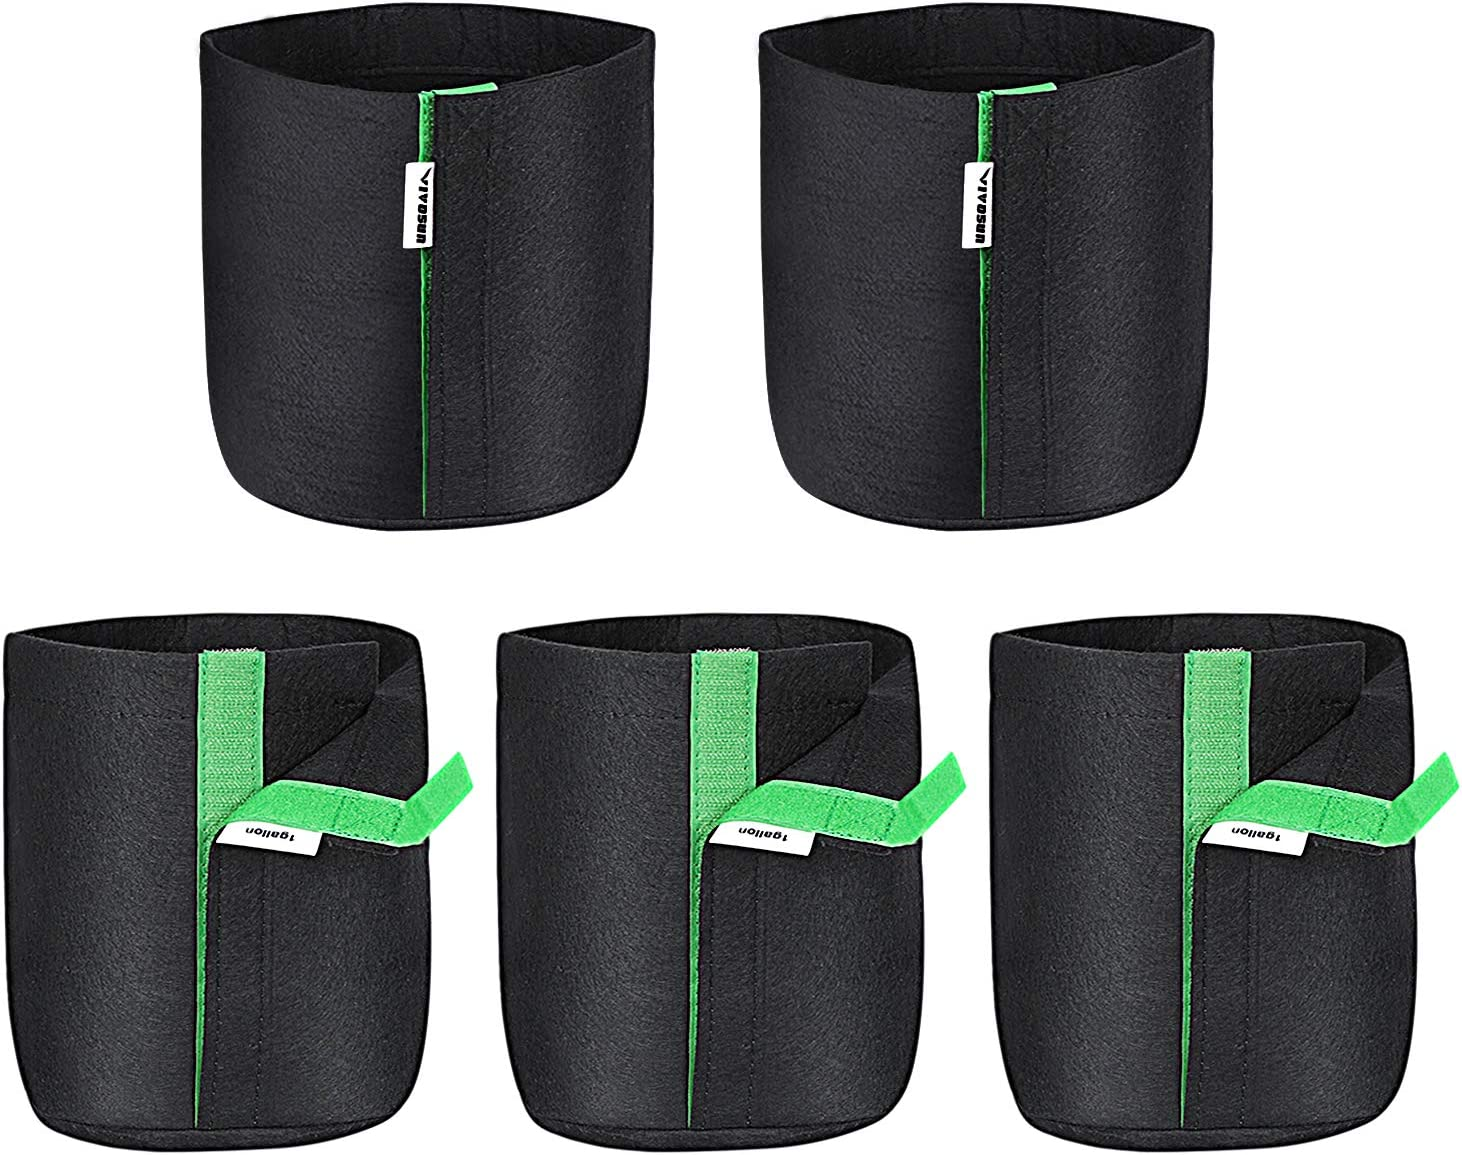 VIVOSUN 5-Pack 1 Gallon Grow Bags, Fabric Pots with Self-Adhesion Sides for Transplanting